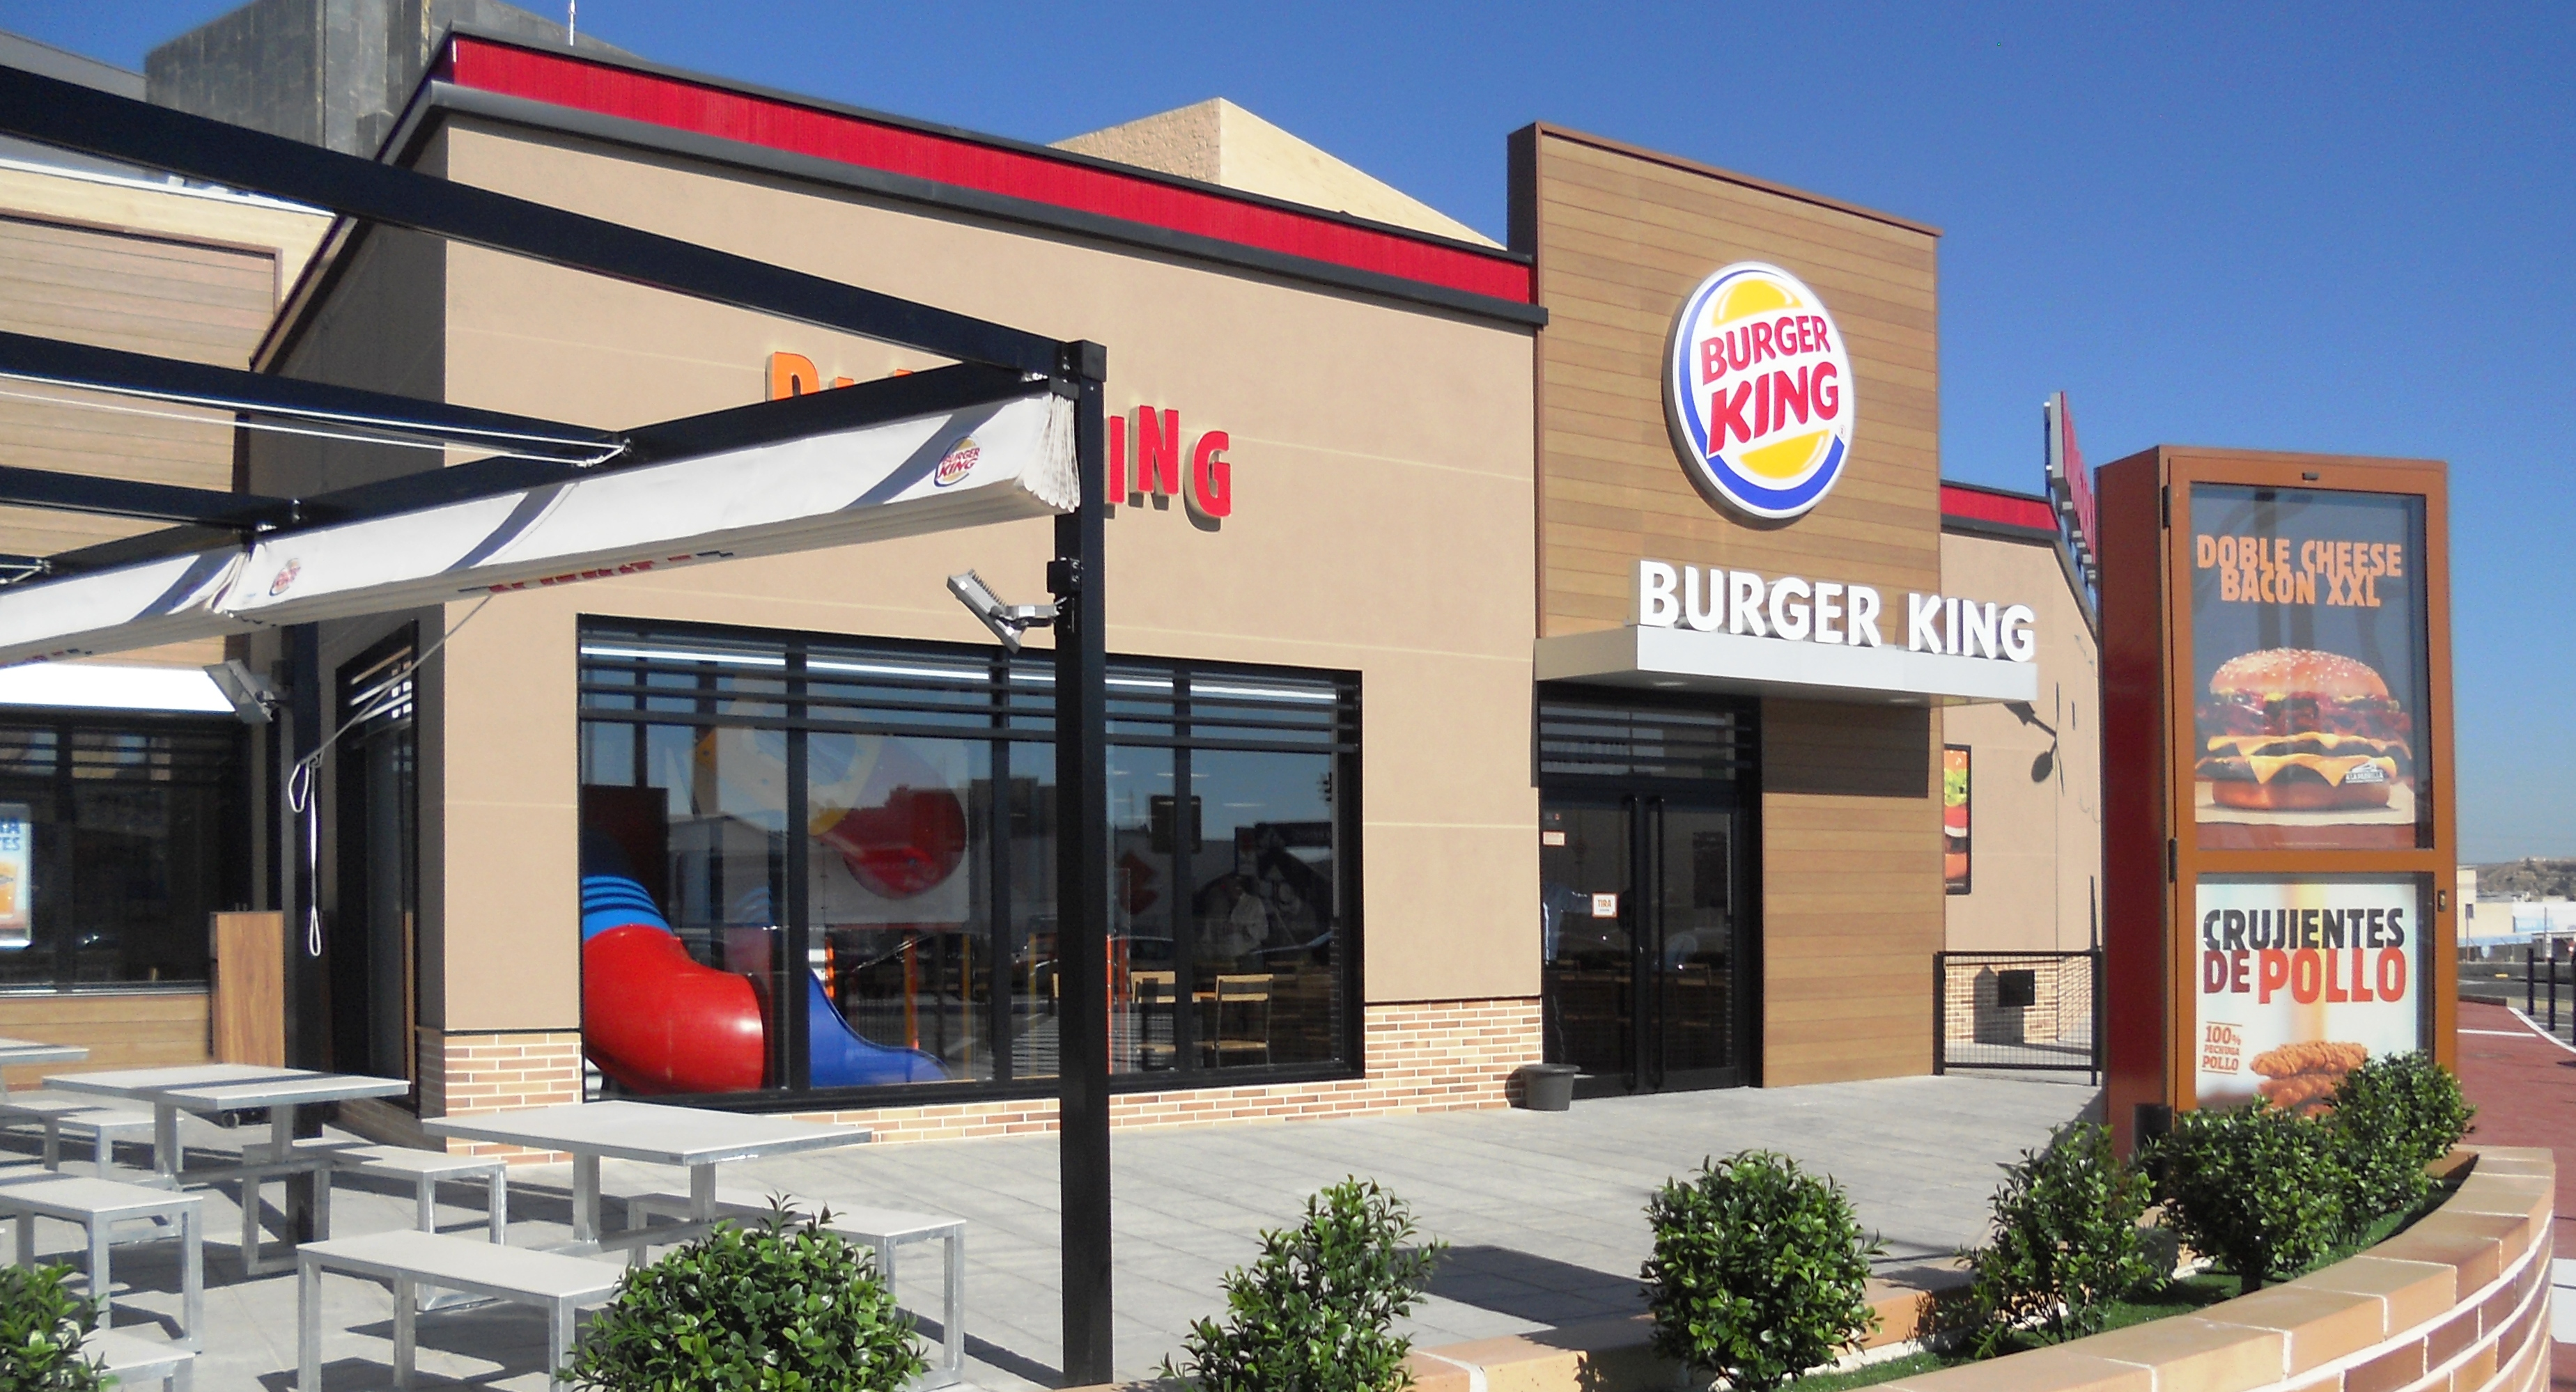 inauguraci n burguer king en huercal de almer a weeky. Black Bedroom Furniture Sets. Home Design Ideas